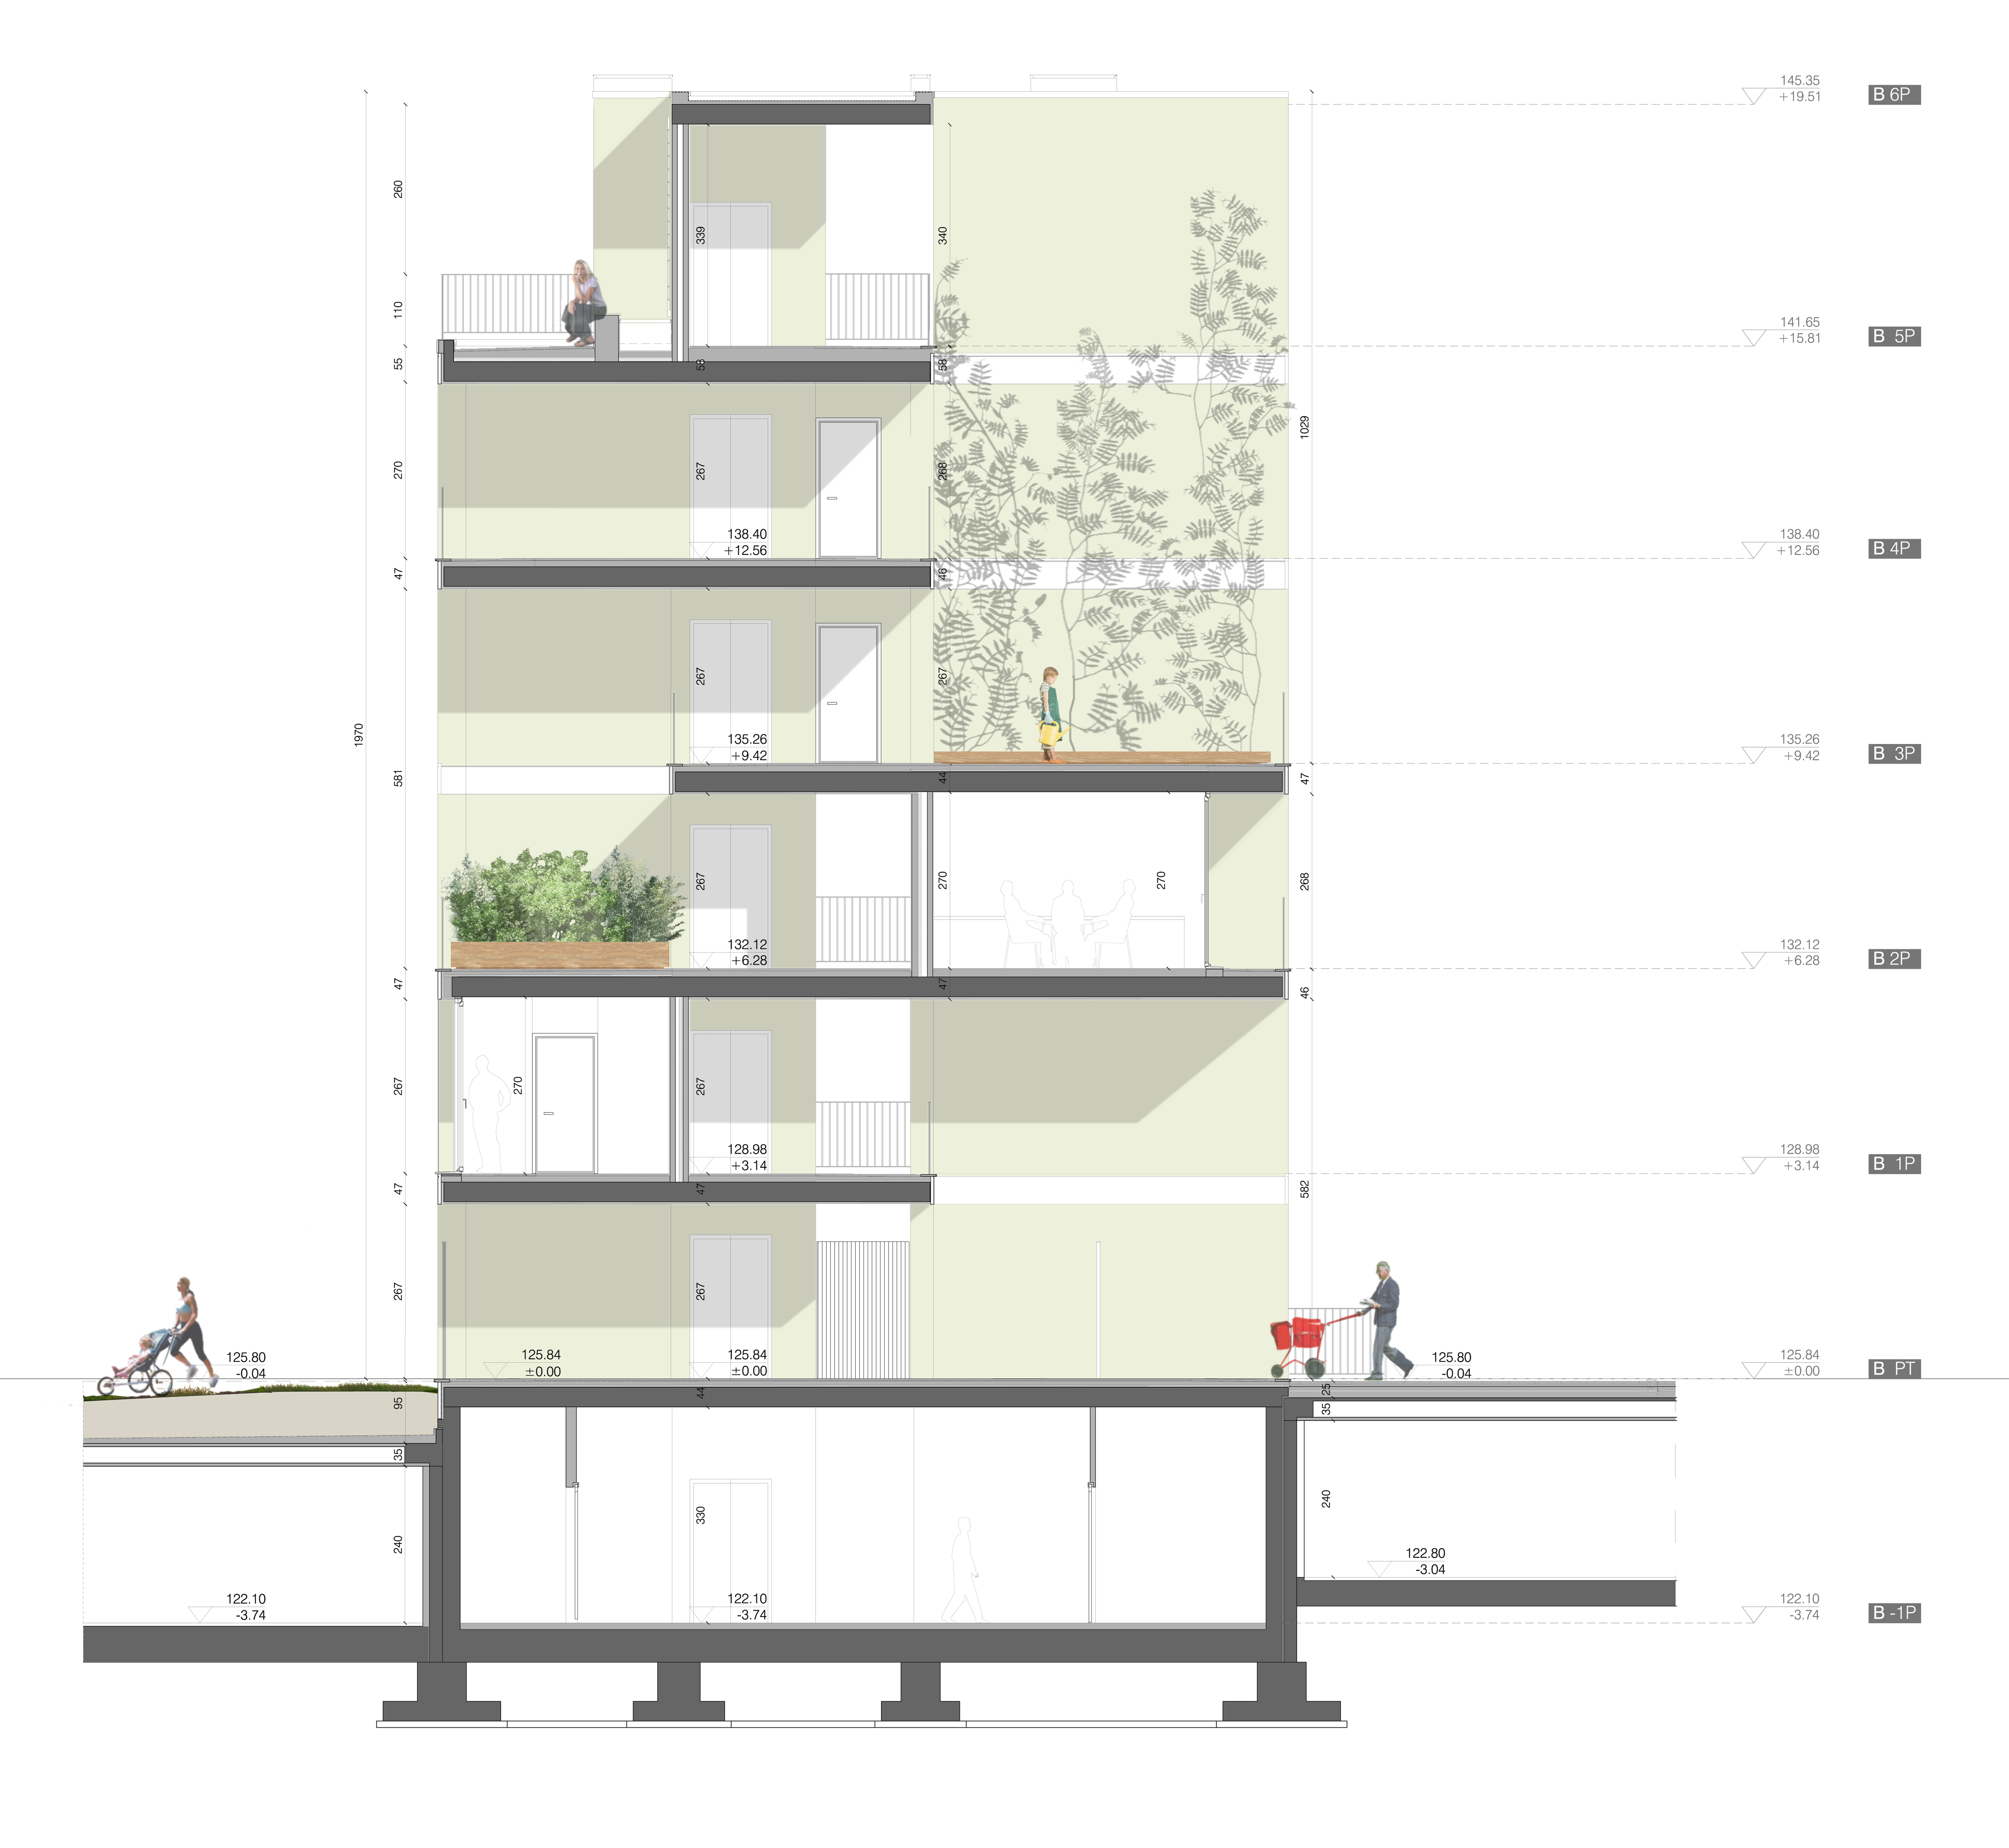 section of the residential buildings© Consalez Rossi Architetti Associati